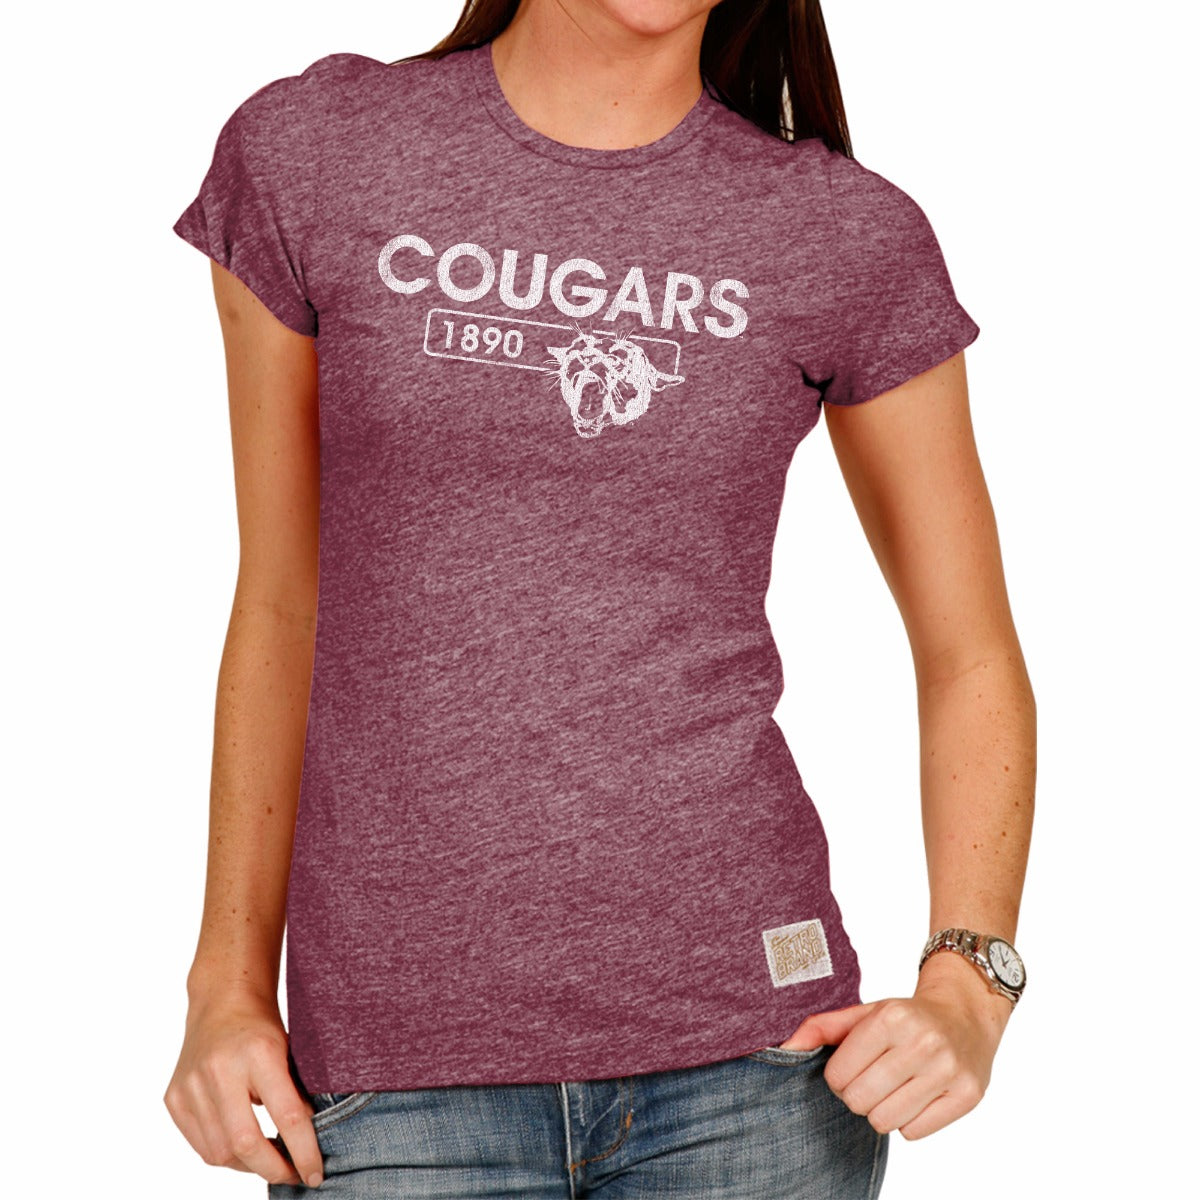 Washington State Cougars Tri-Blend Women's Crew Tee